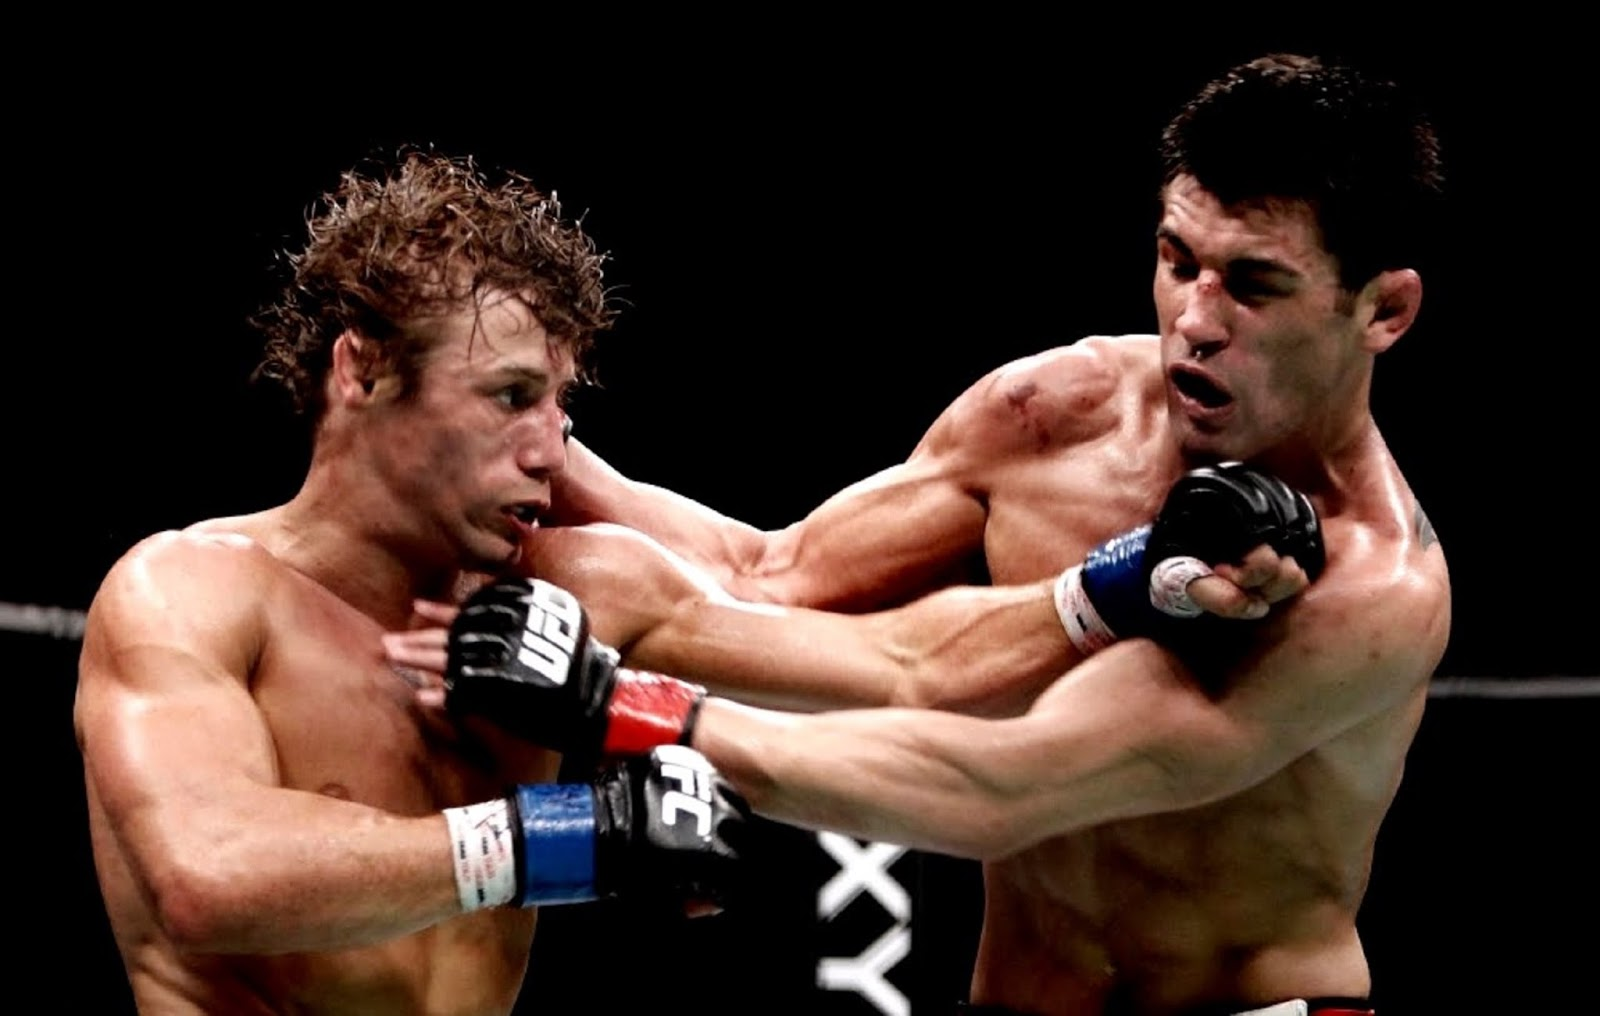 DOMINICK CRUZ VS. URIJAH FABER 4